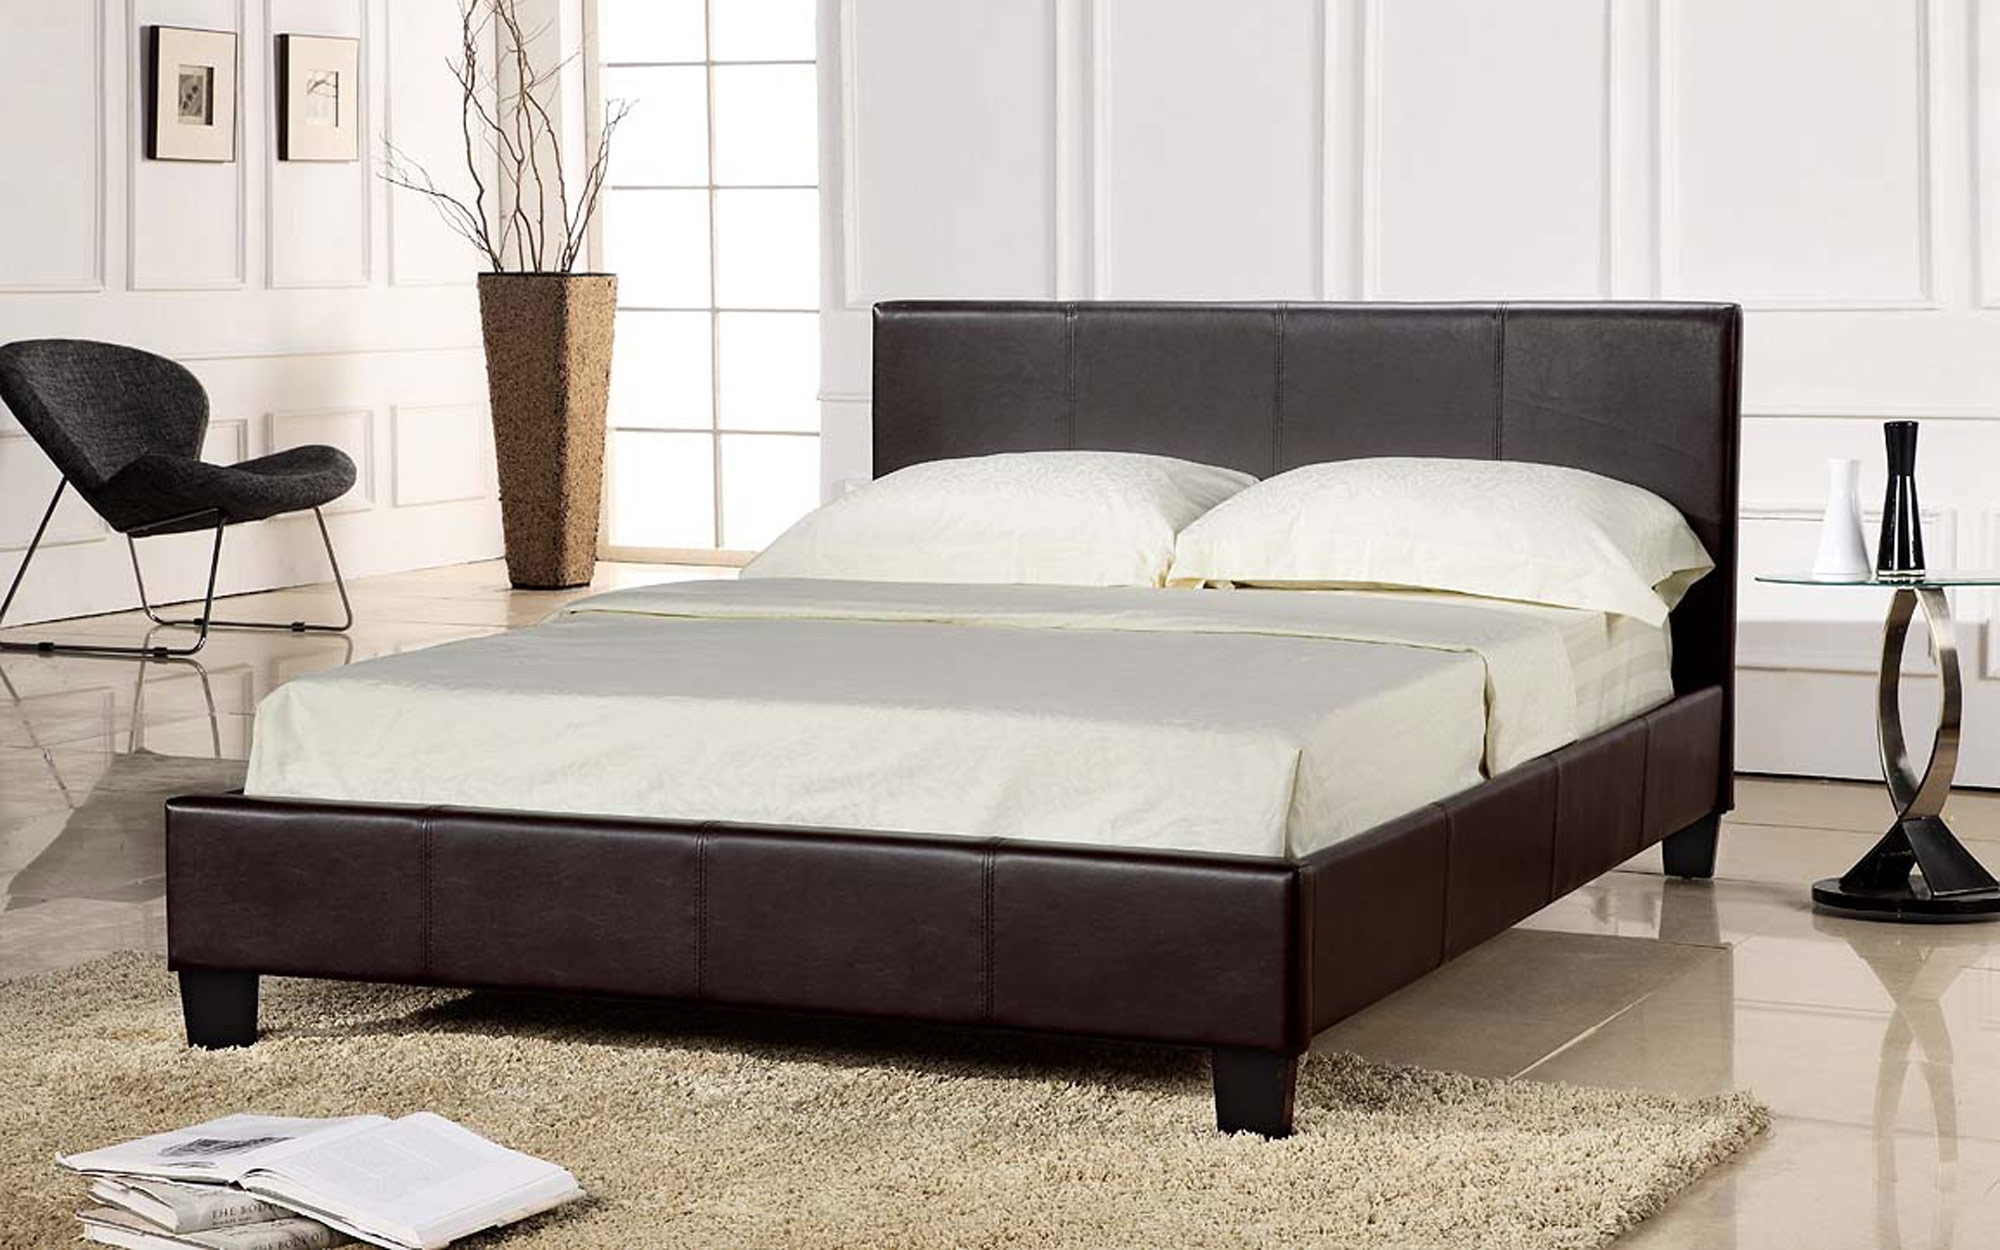 King Size Mattress And Bed Frame Sets